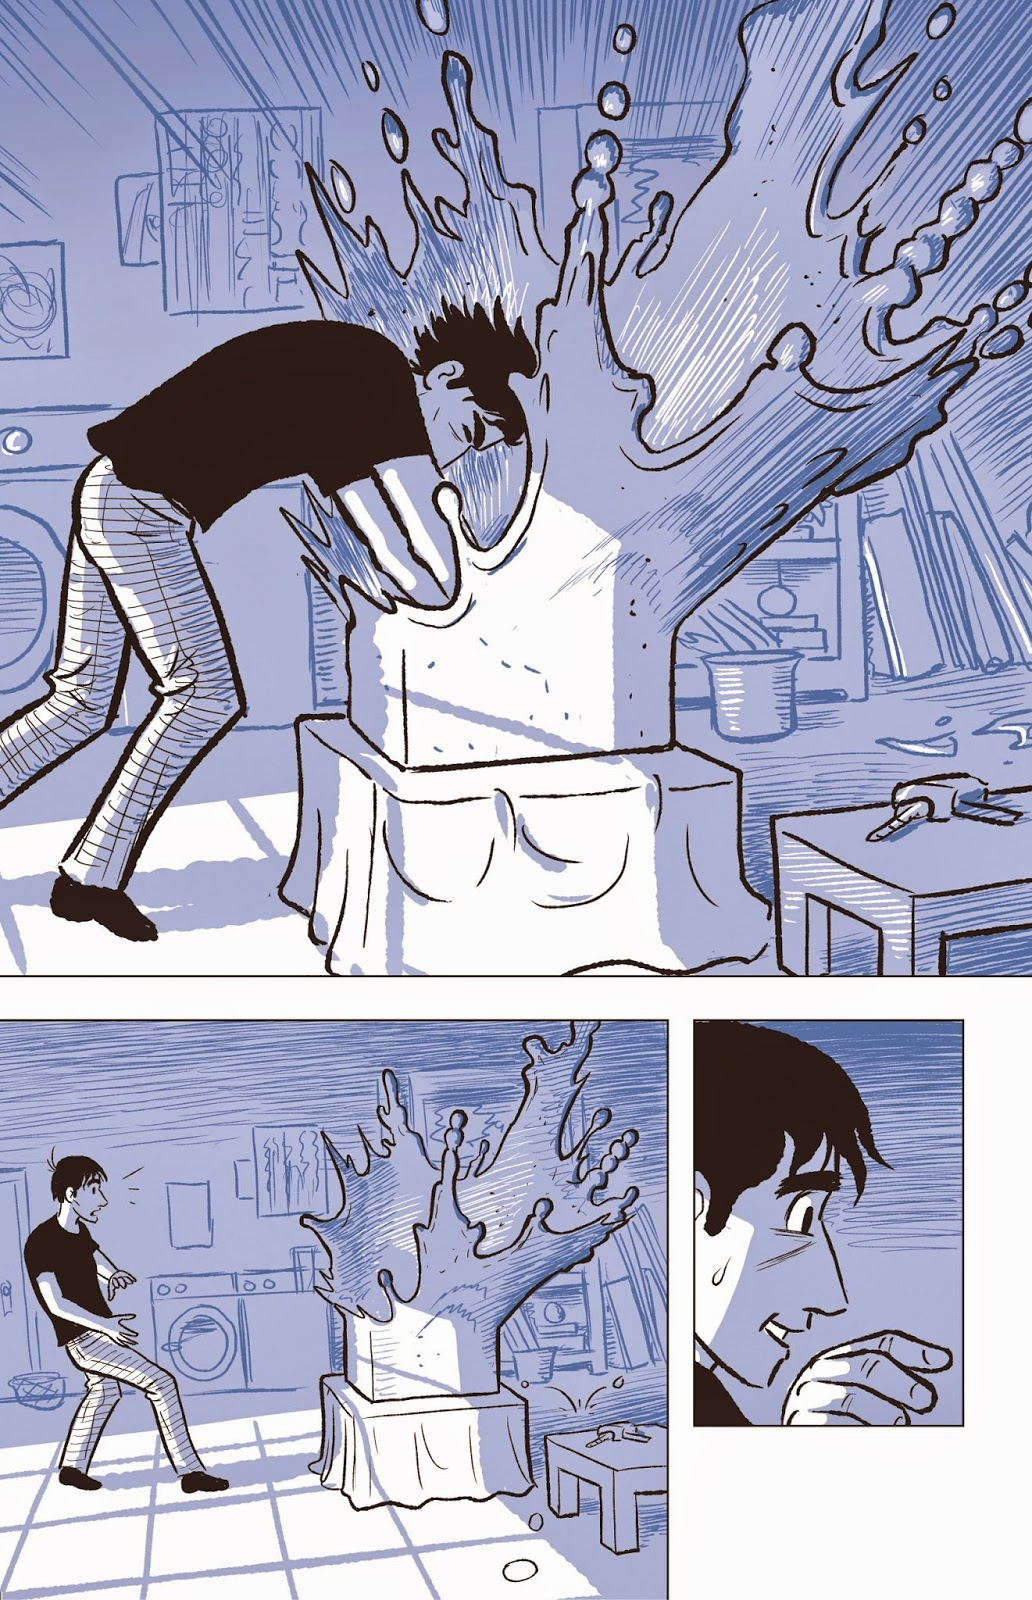 david the sculptor scott mccloud